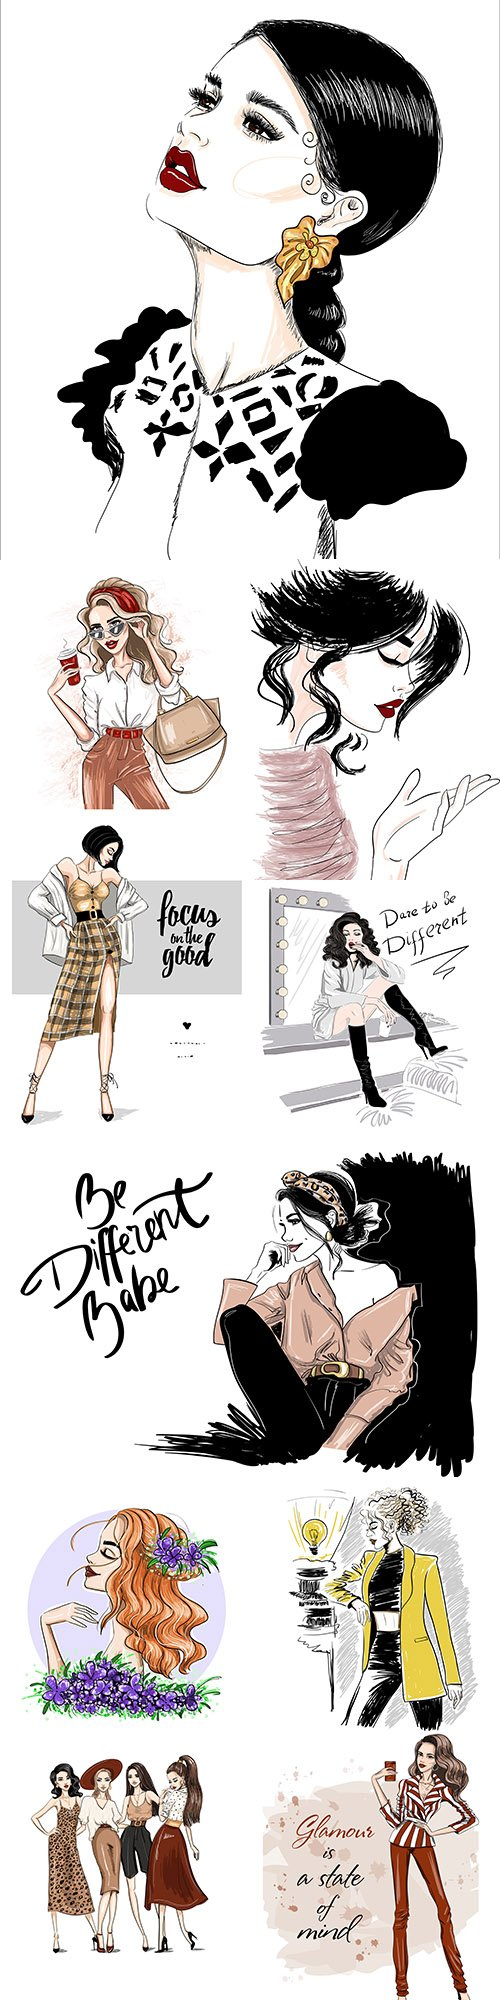 Fashion girl with accessories and stylish clothes